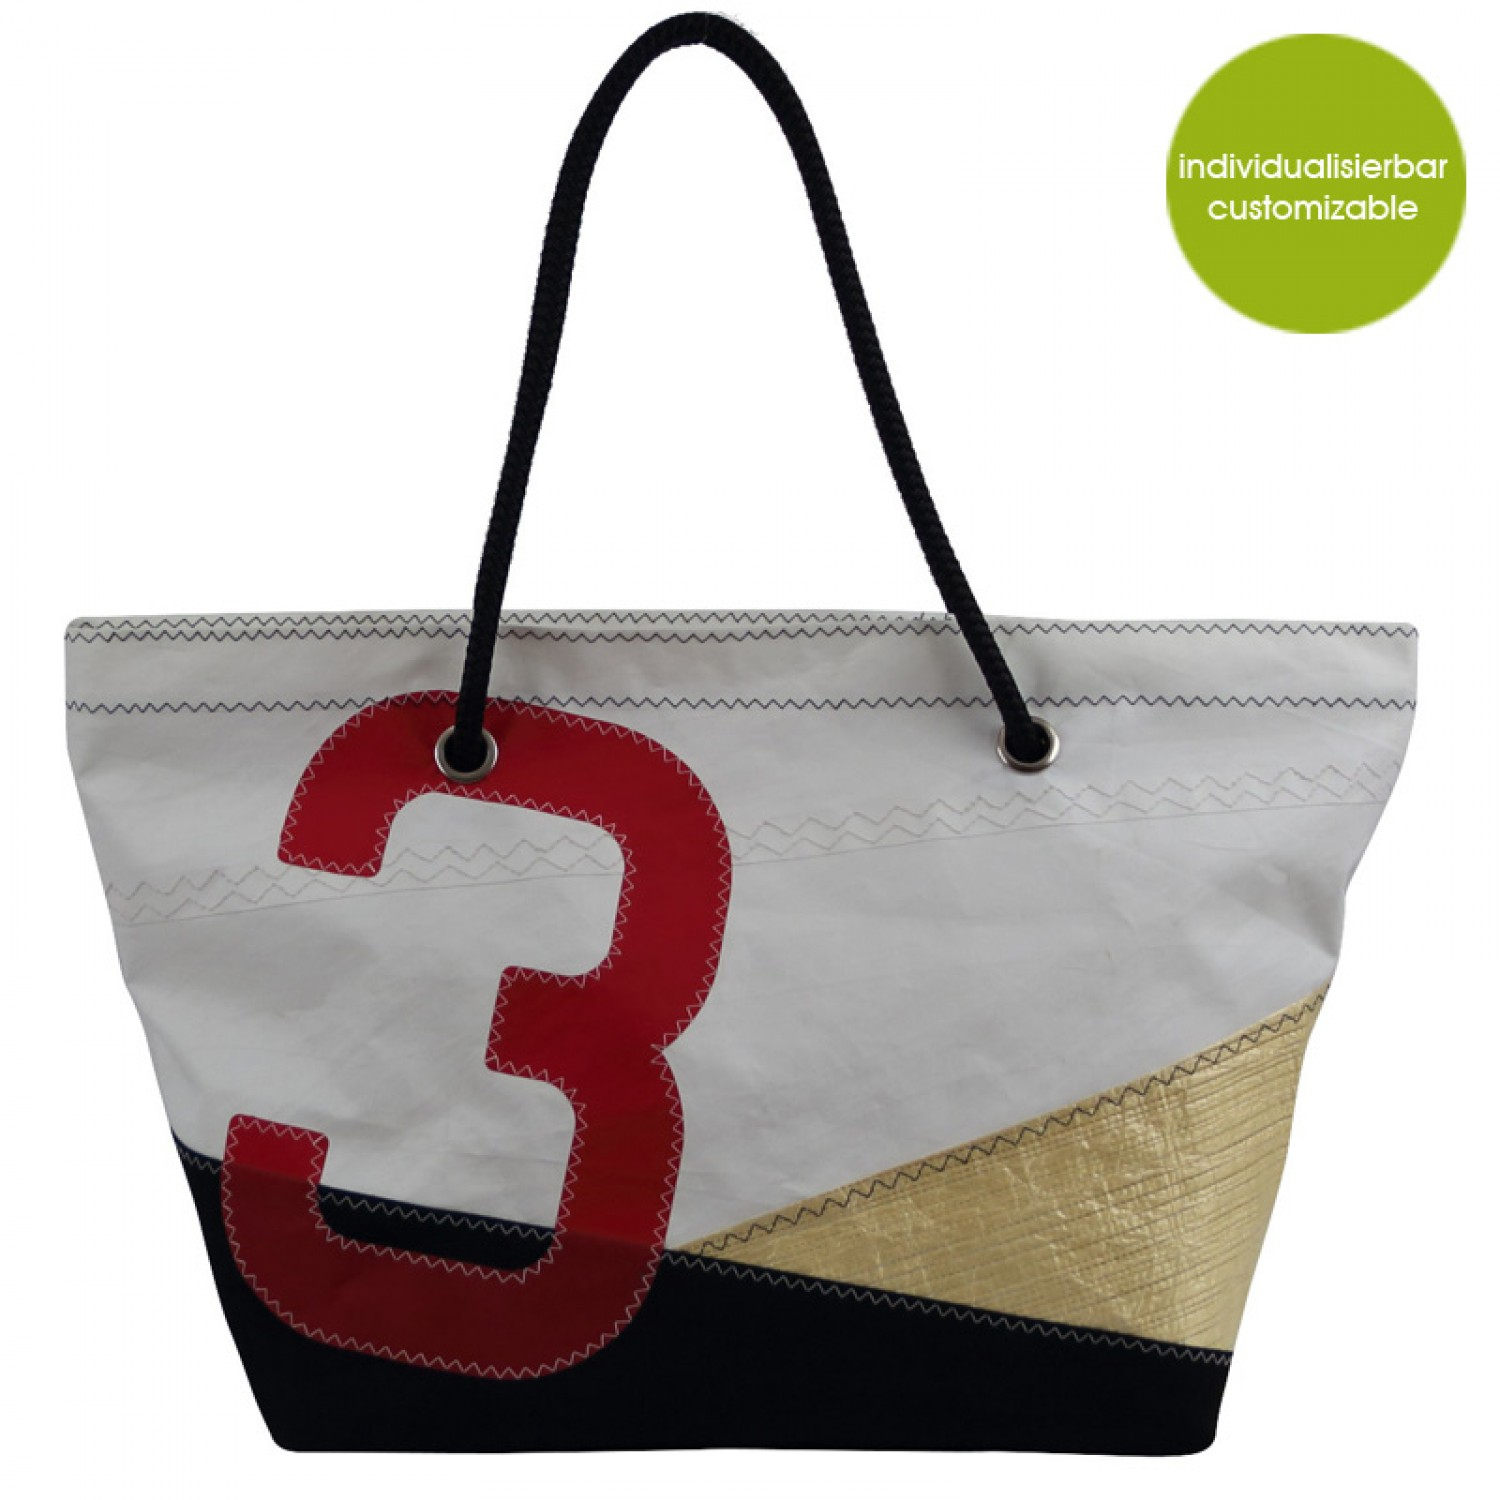 4812ebb51fa052 Beach Bag »Sail Boat 3« made of recycled sailcloth or new canvas –  customizable